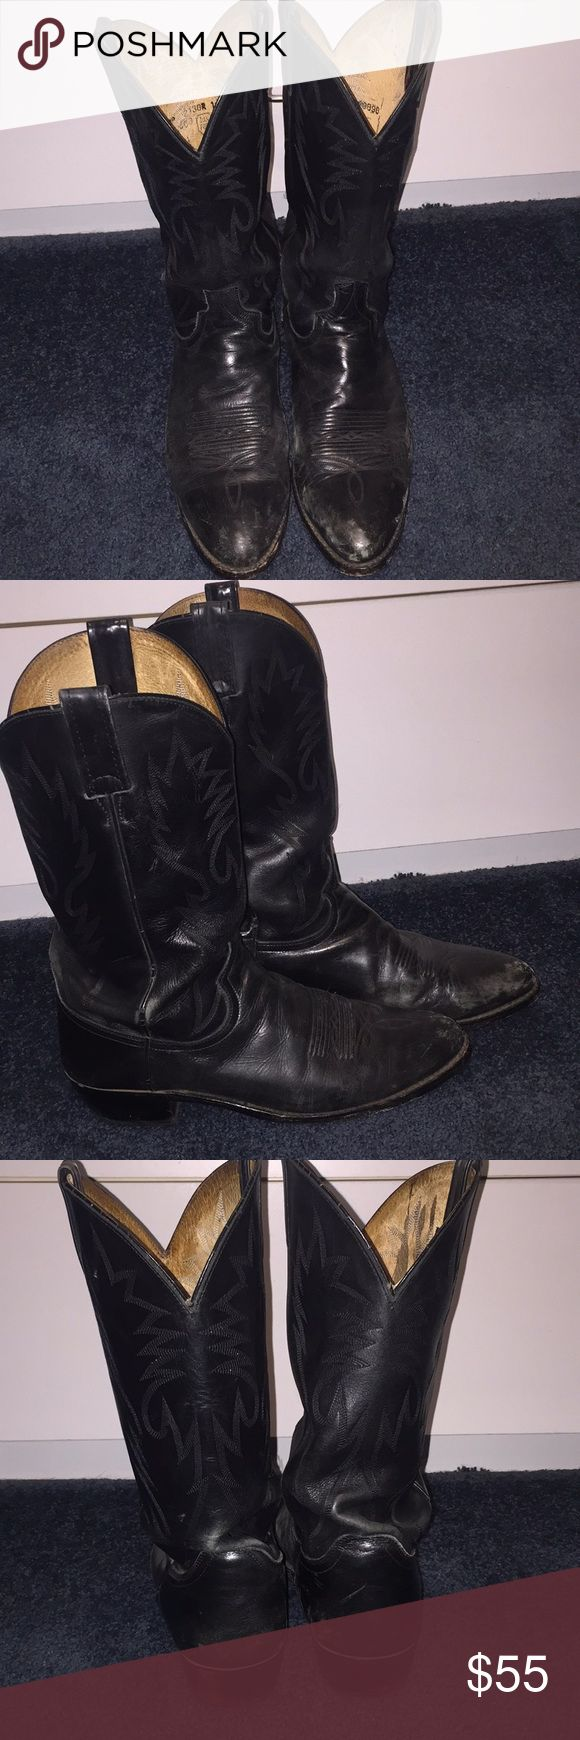 Dan Post men's black leather western boots Owned by one cowboy who has danced many a two step, traveling cha-cha and horseshoe in these classic favorites. Get these broken in western boots cheap and spend the savings getting them resoled for your cowboy up nights! Dan Post Shoes Cowboy & Western Boots